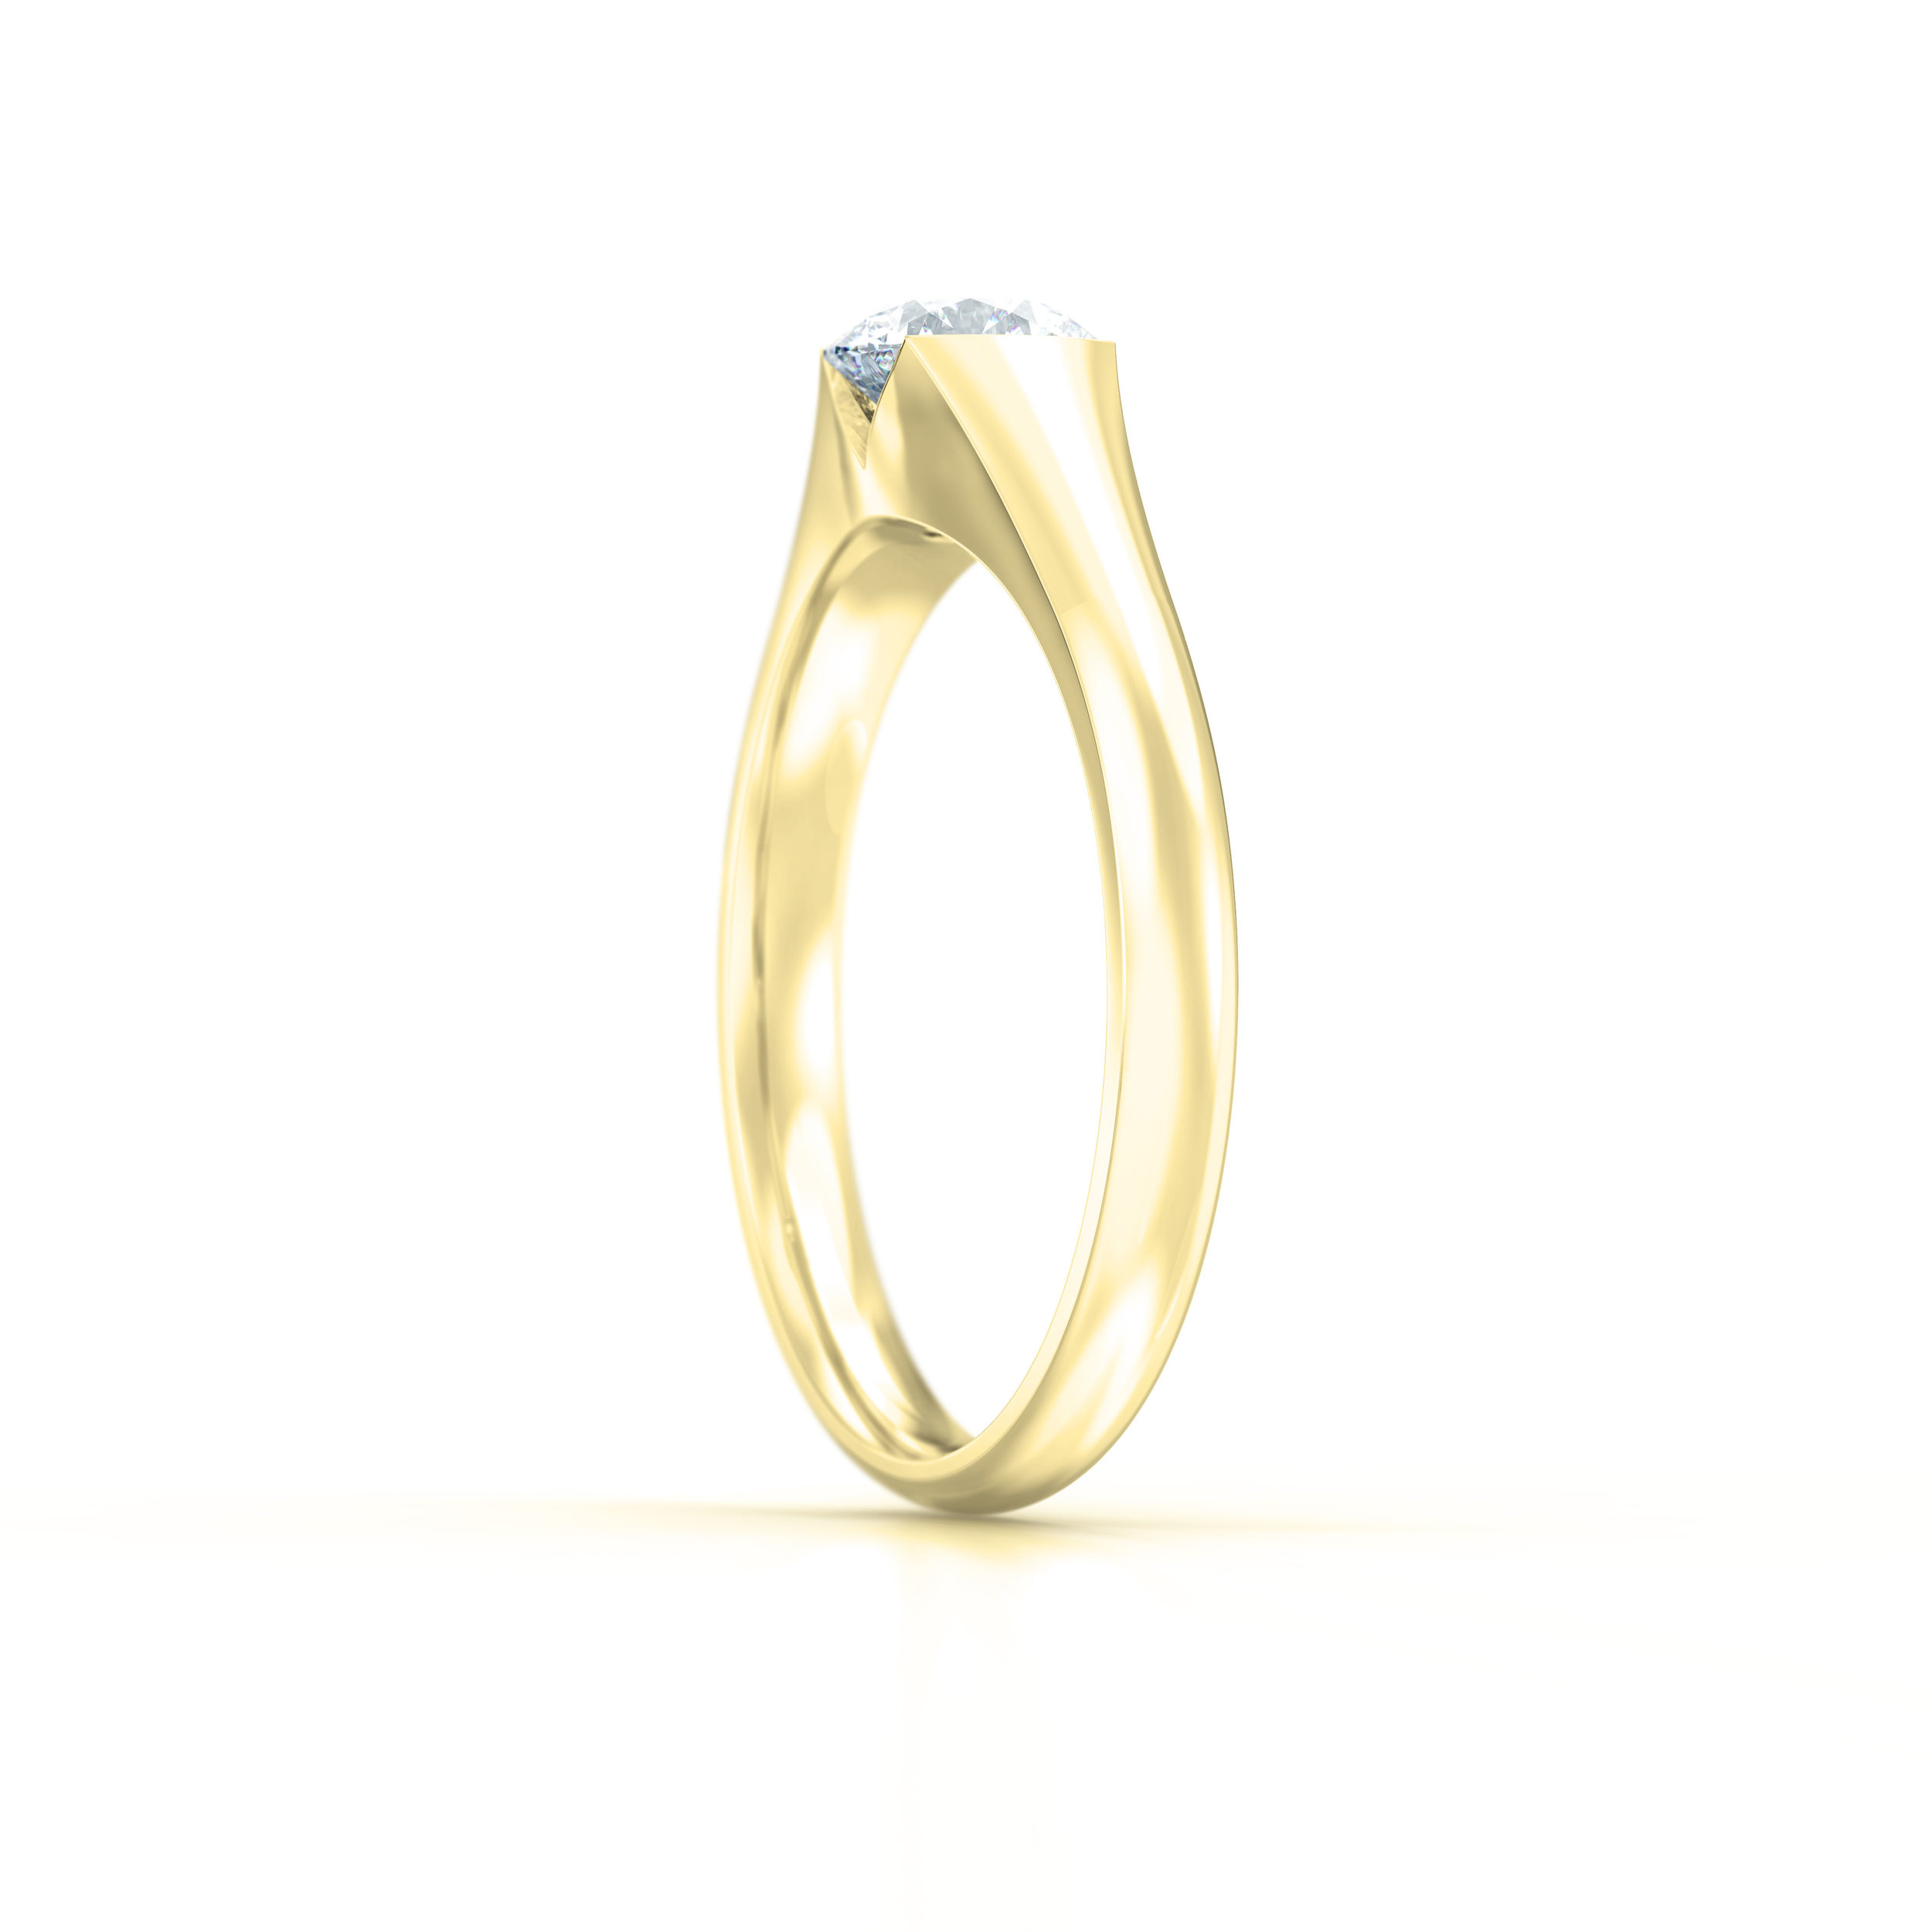 Tapered Yellow Gold Solitaire Engagement Ring | Hatton Garden